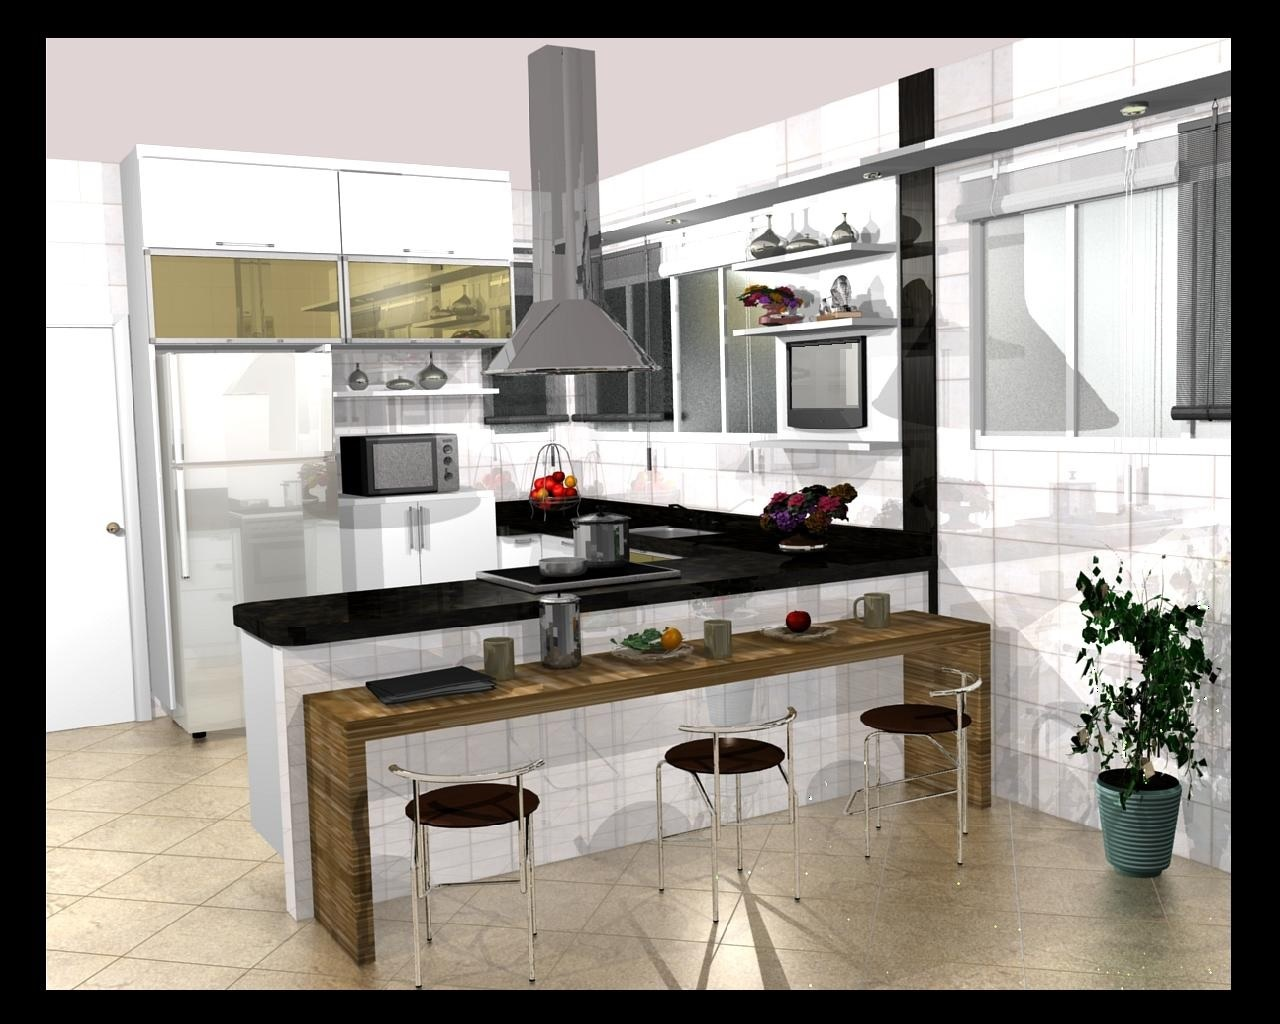 Cozinha Americana Com Sala 10 Pictures to pin on Pinterest #61492F 1280 1024